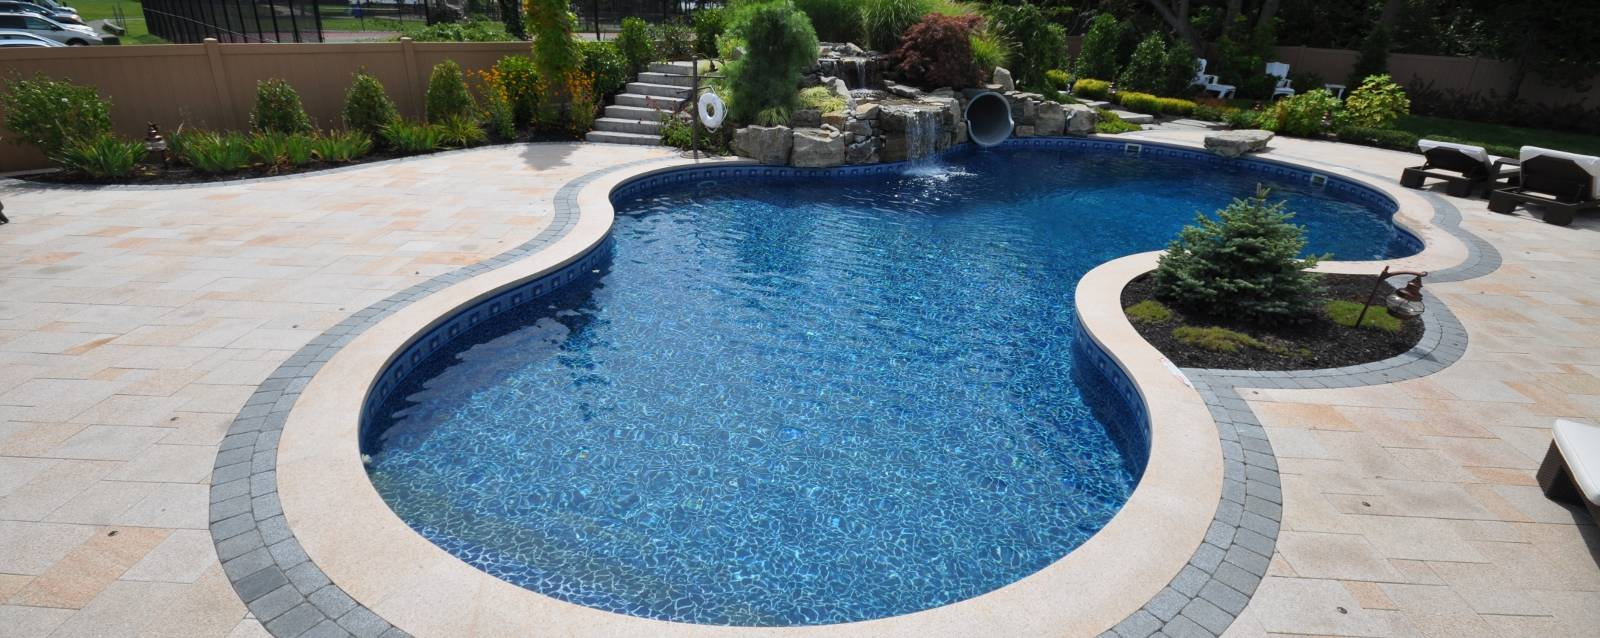 Inground Pools long island inground pools | in ground pool installation